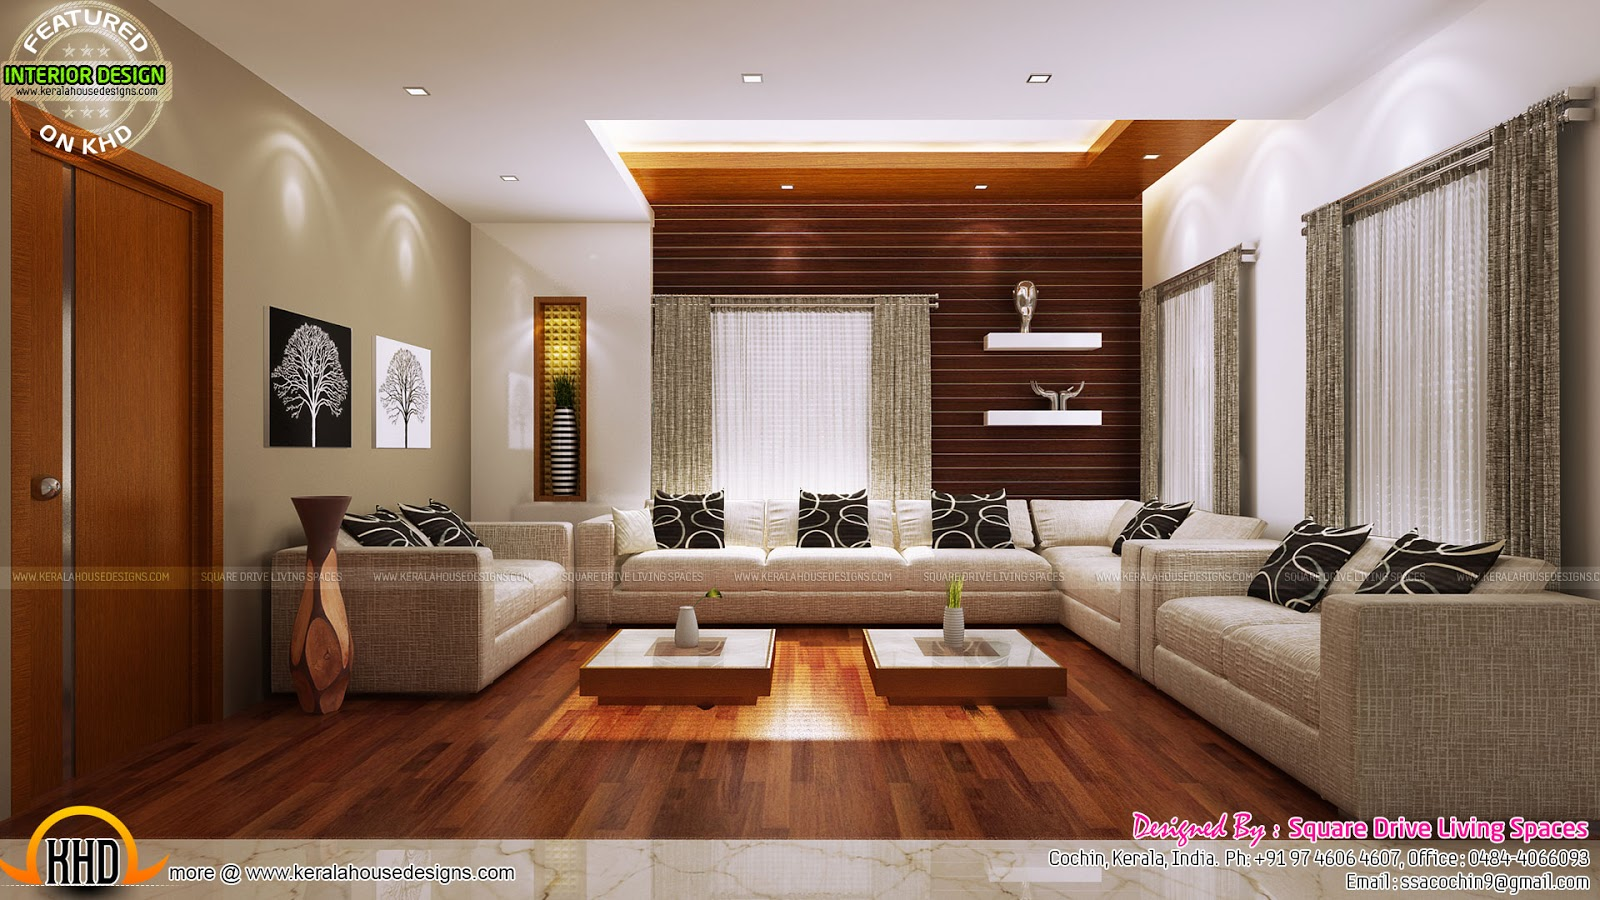 Excellent kerala interior design kerala home design and for Interior designs for home